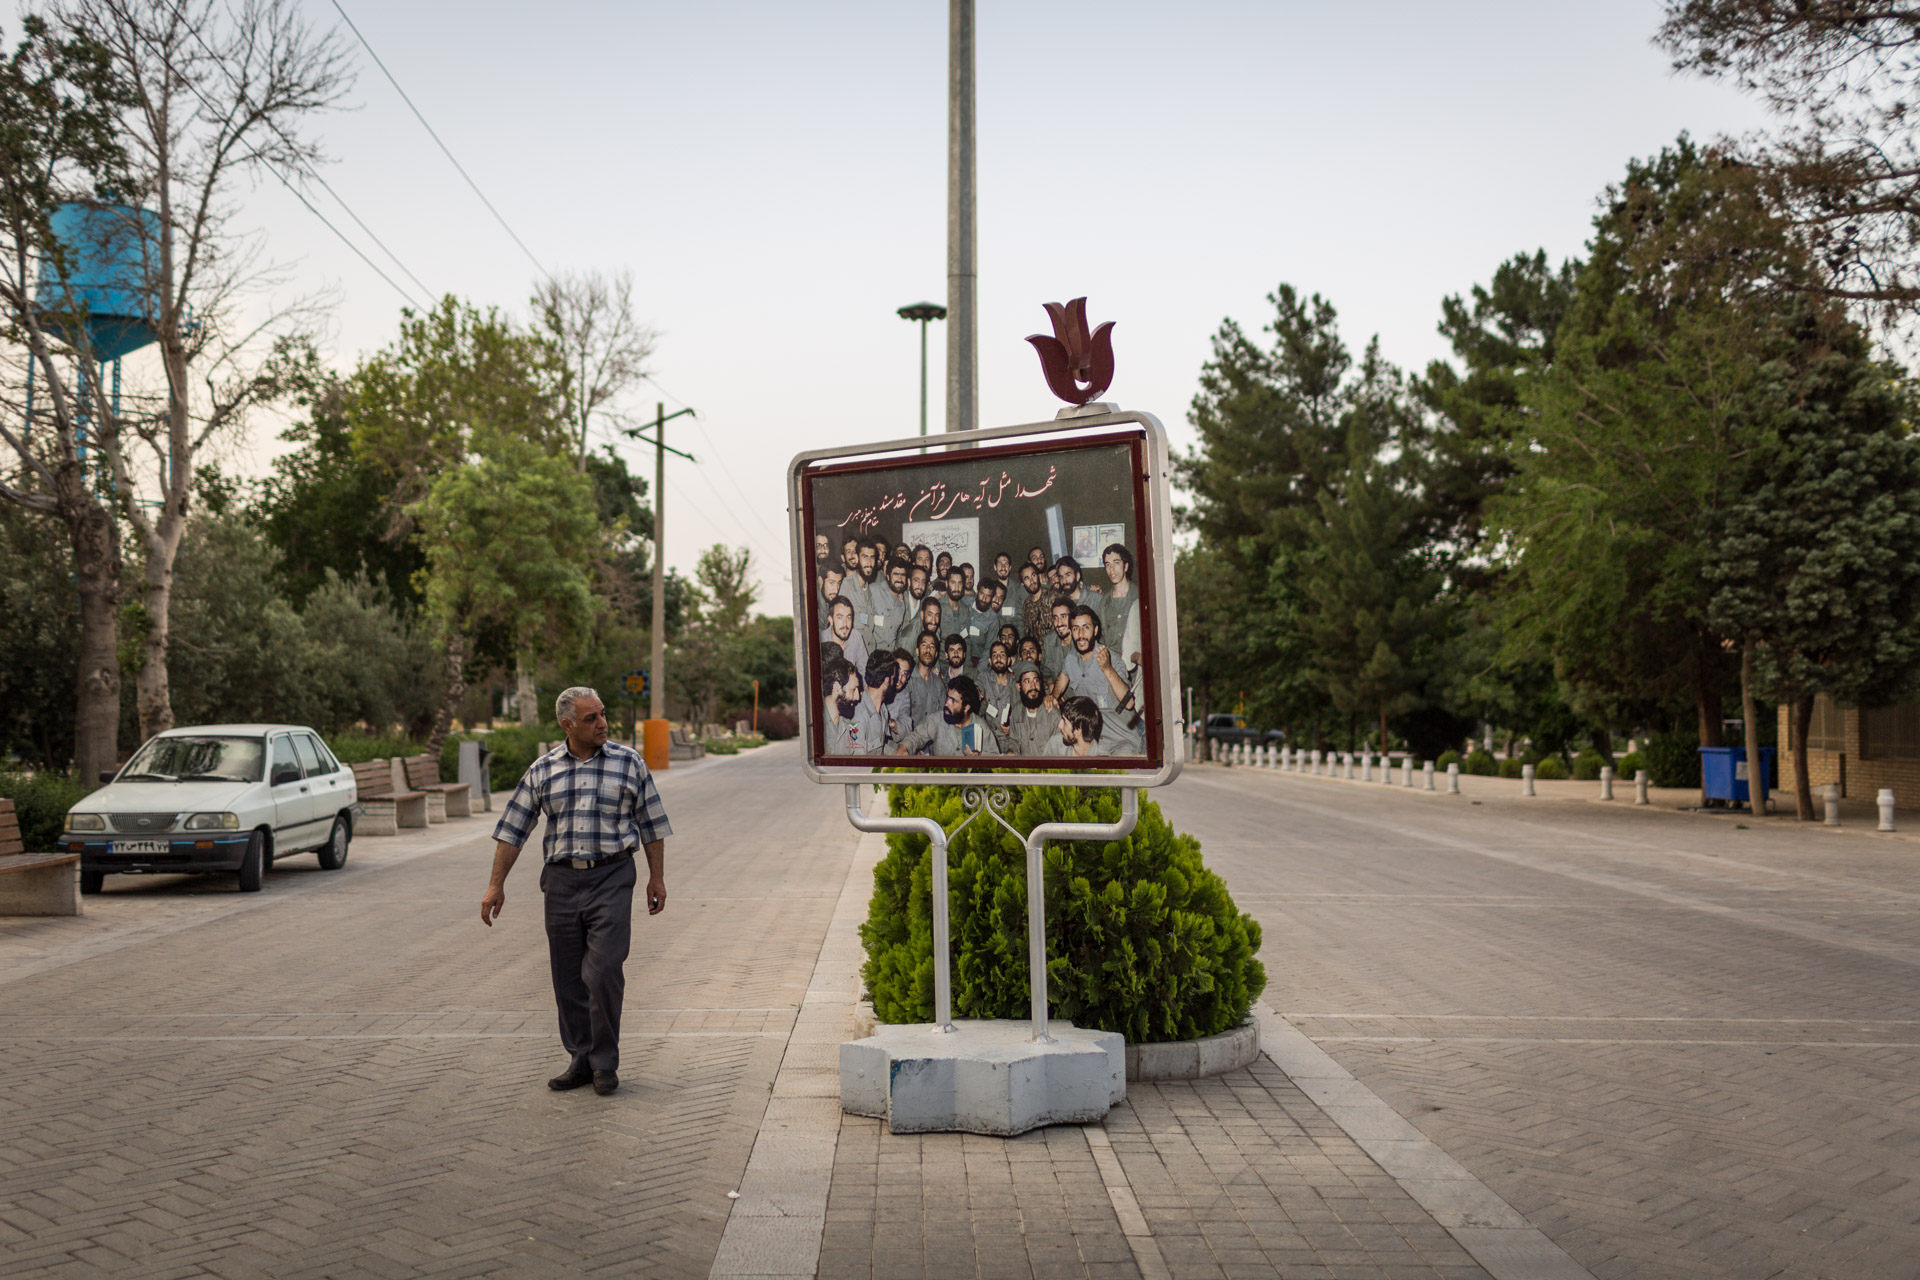 On Behesht-e Zahra, a man walks by a photograph depicting Iranian soldiers during the Iran-Iraq war.